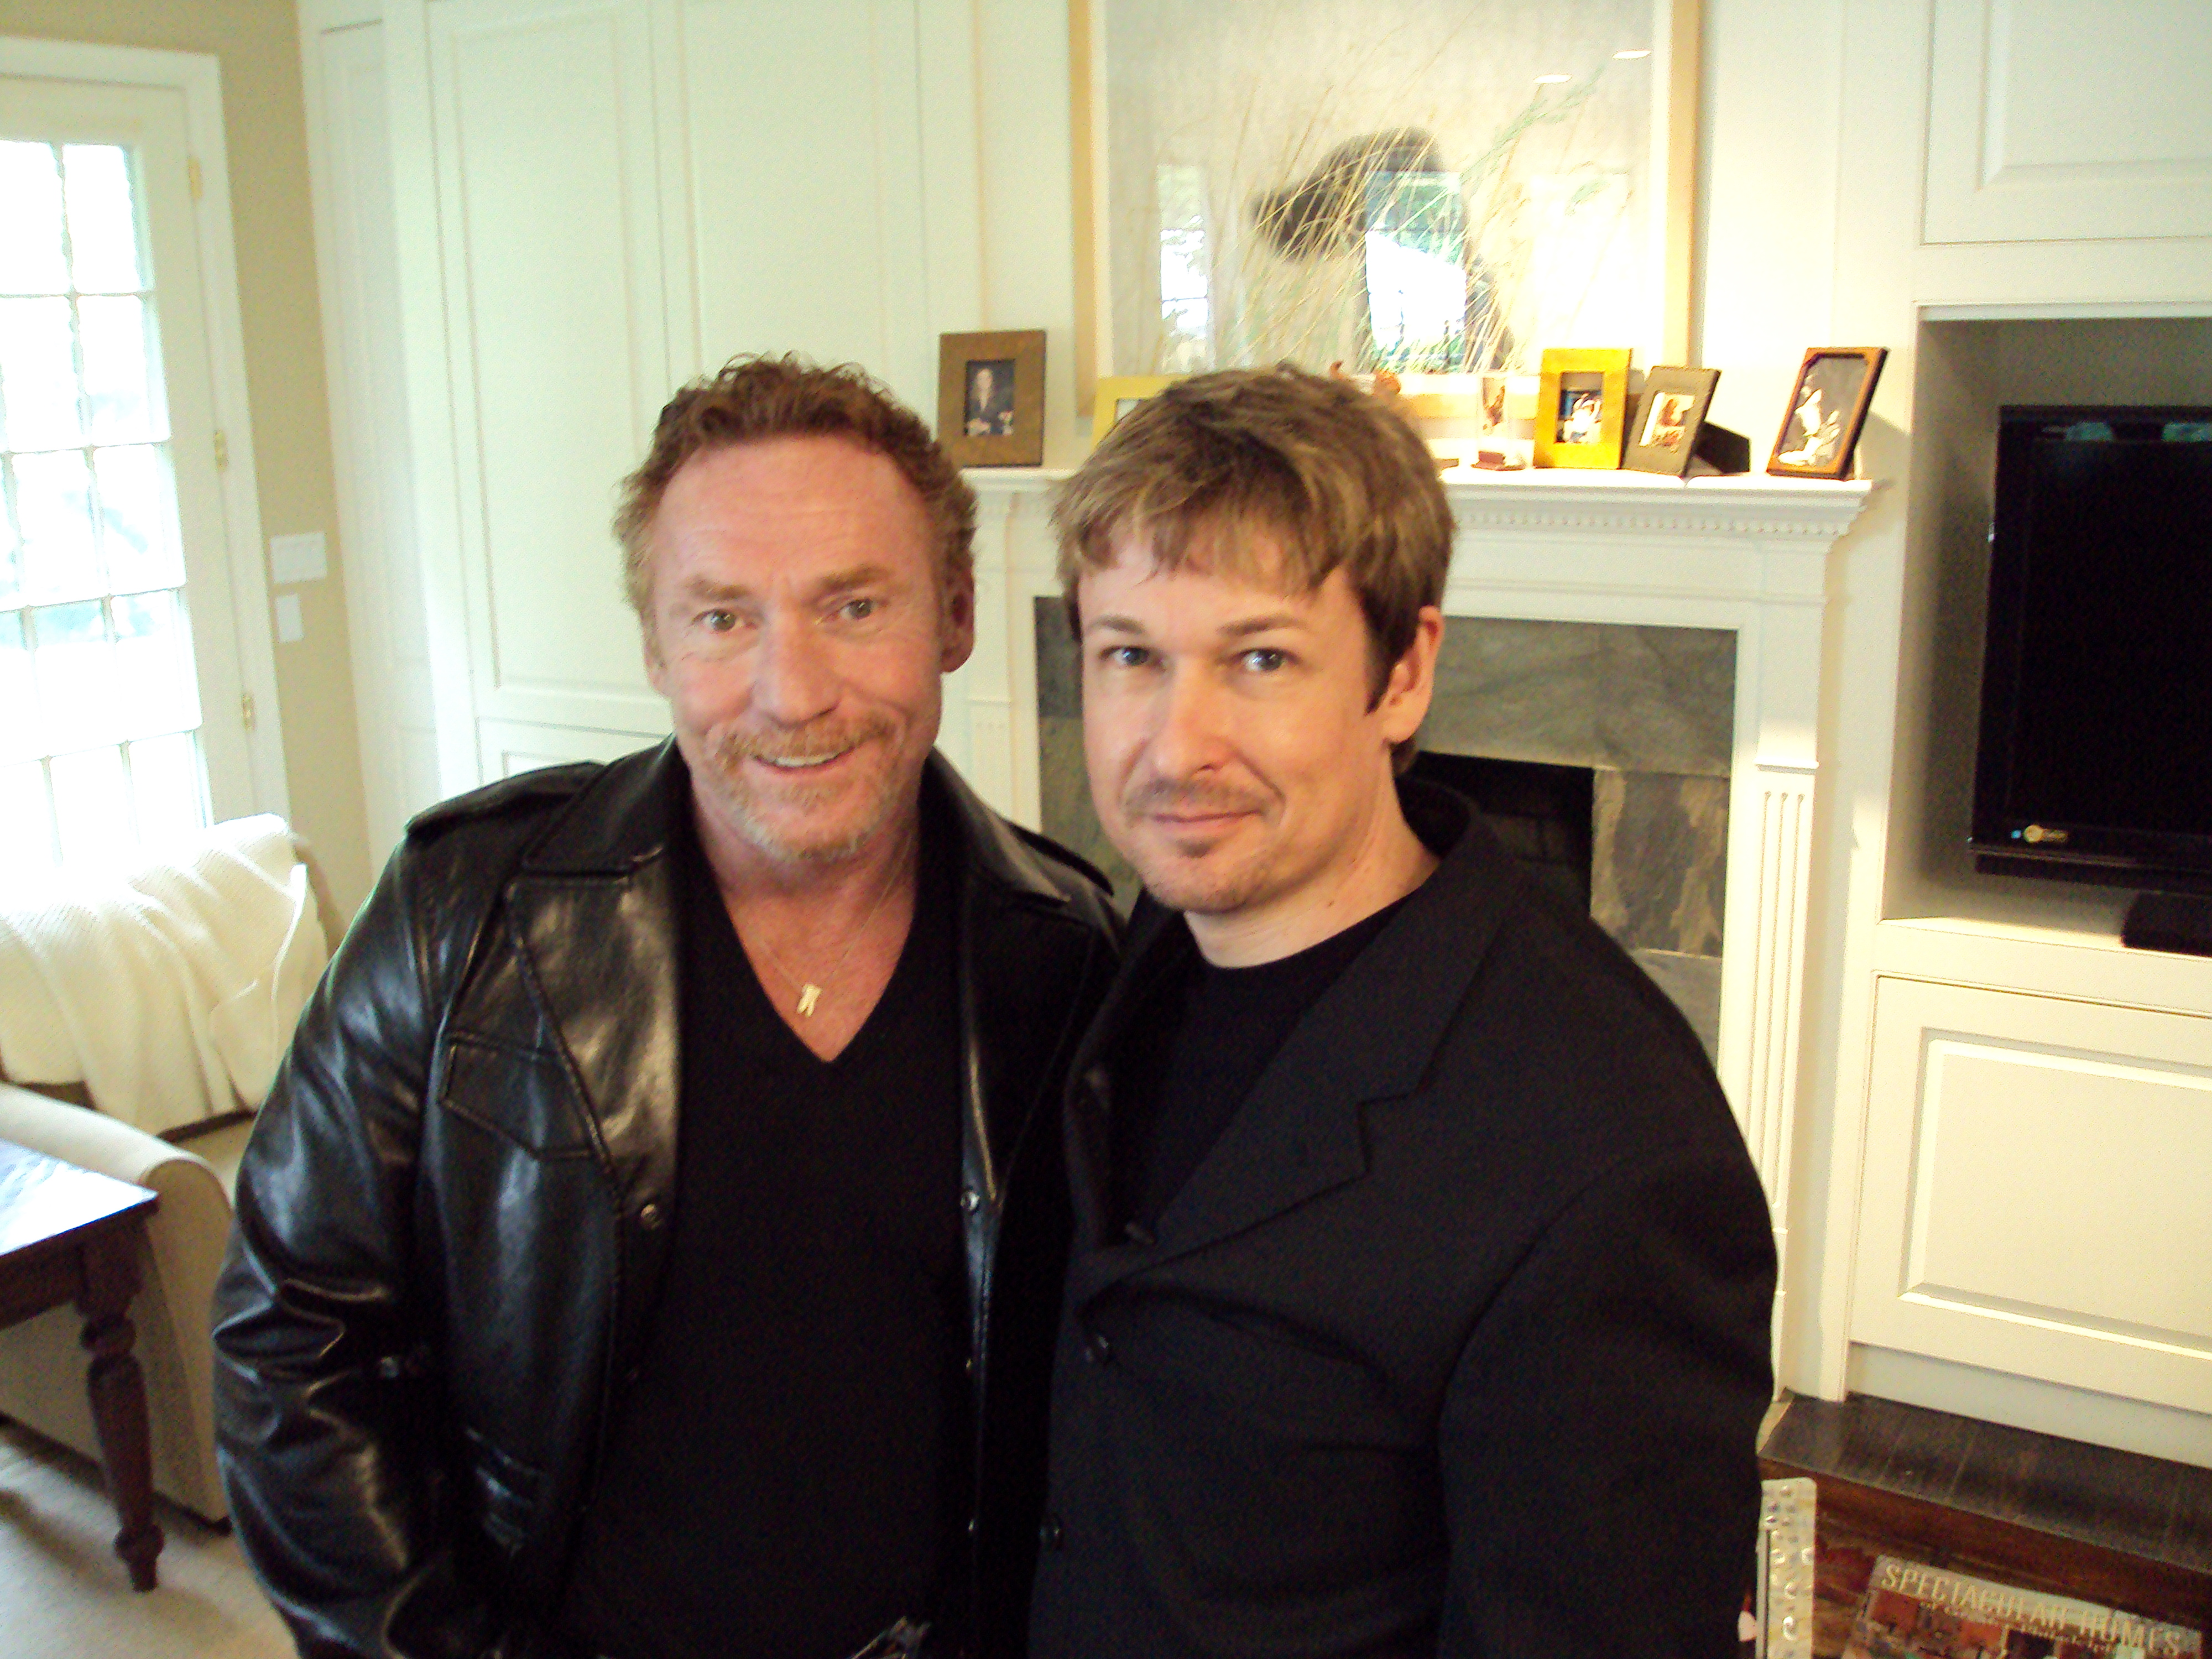 "danny bonaduce dating history Best known as keith partridge from the hit '70s musical sitcom ""the partridge family,"" david cassidy was arguably one of the most popular teen idols and pop singers of the era cassidy died from organ failure on nov 21, 2017, in fort lauderdale, florida, at age 67 we look back at some of the."